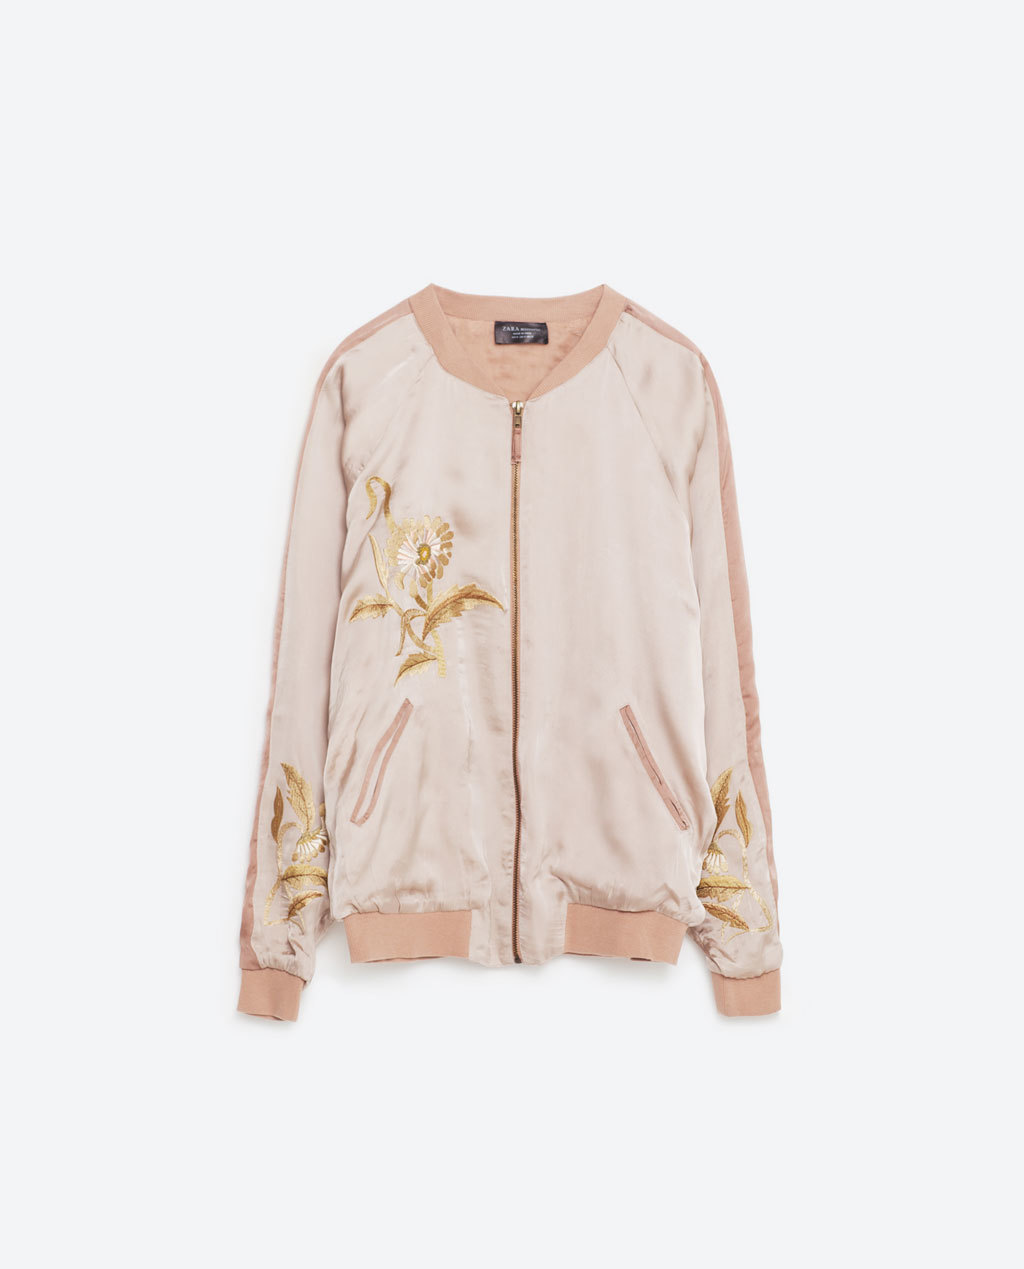 Embroidered Bomber Style Jacket - collar: round collar/collarless; style: bomber; predominant colour: blush; occasions: casual, creative work; length: standard; fit: straight cut (boxy); fibres: cotton - 100%; sleeve length: long sleeve; sleeve style: standard; texture group: technical outdoor fabrics; collar break: high; pattern type: fabric; pattern size: light/subtle; pattern: patterned/print; season: s/s 2016; wardrobe: highlight